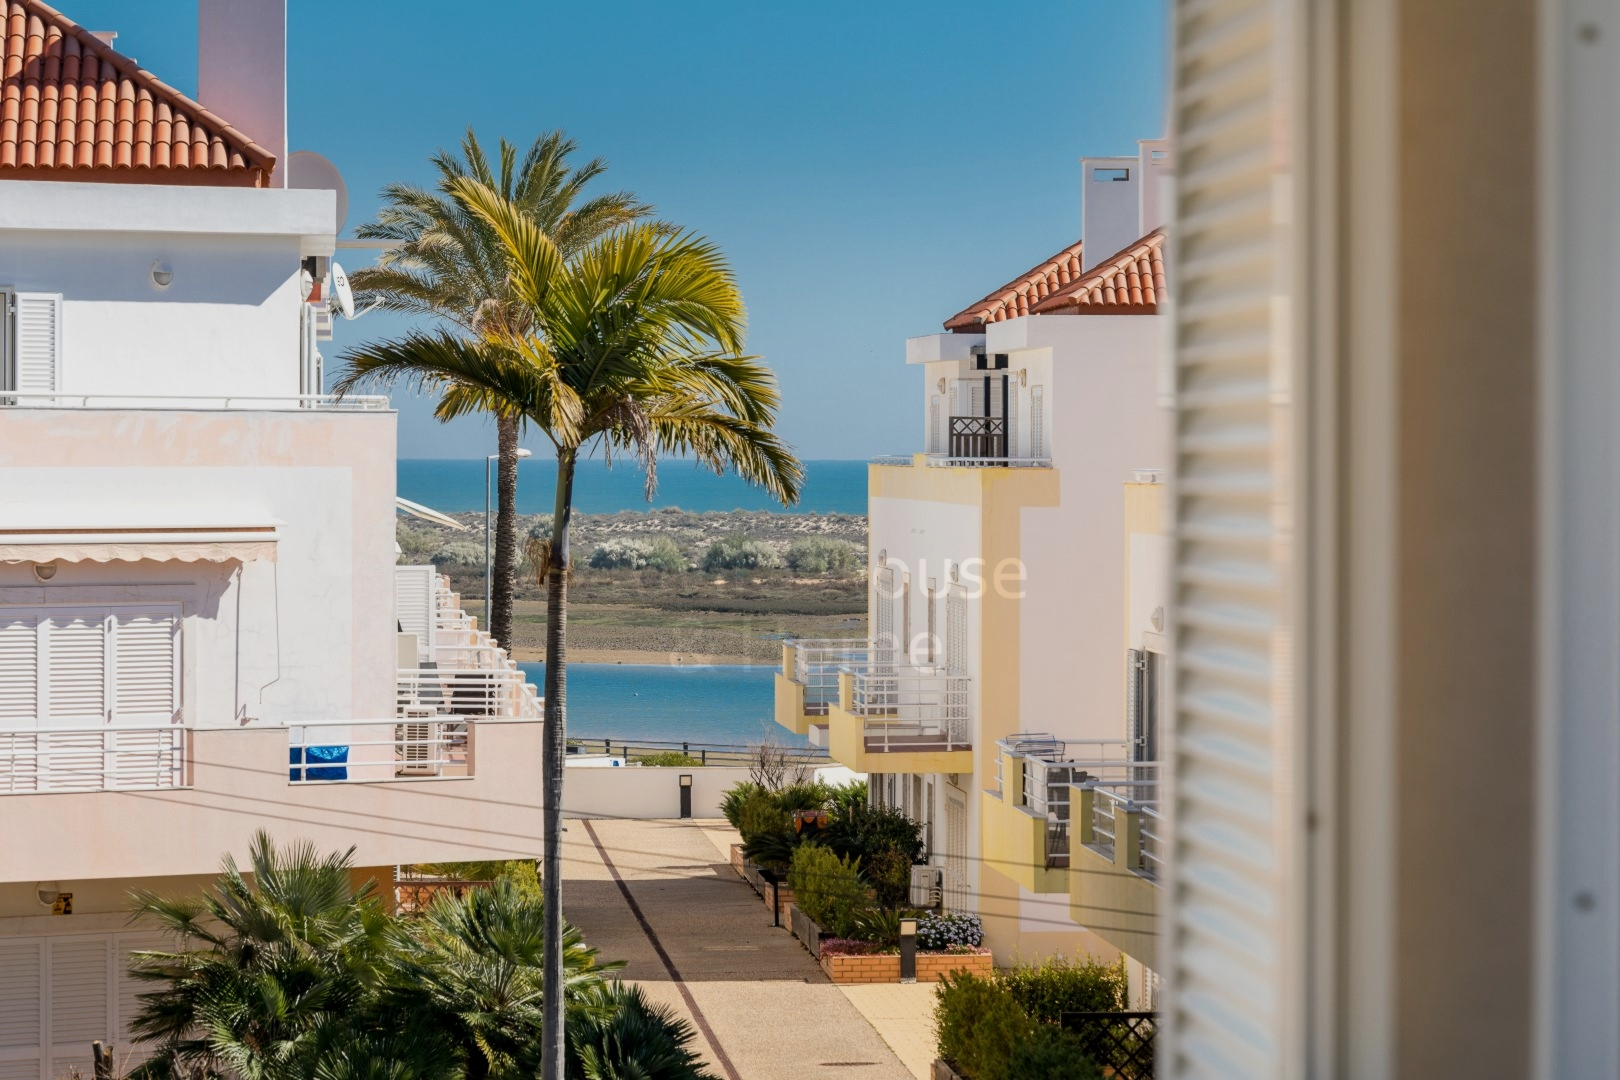 A0561 - 1 Bedroom Apartment Close To Beach  Cabanas  Tavira  Portugal